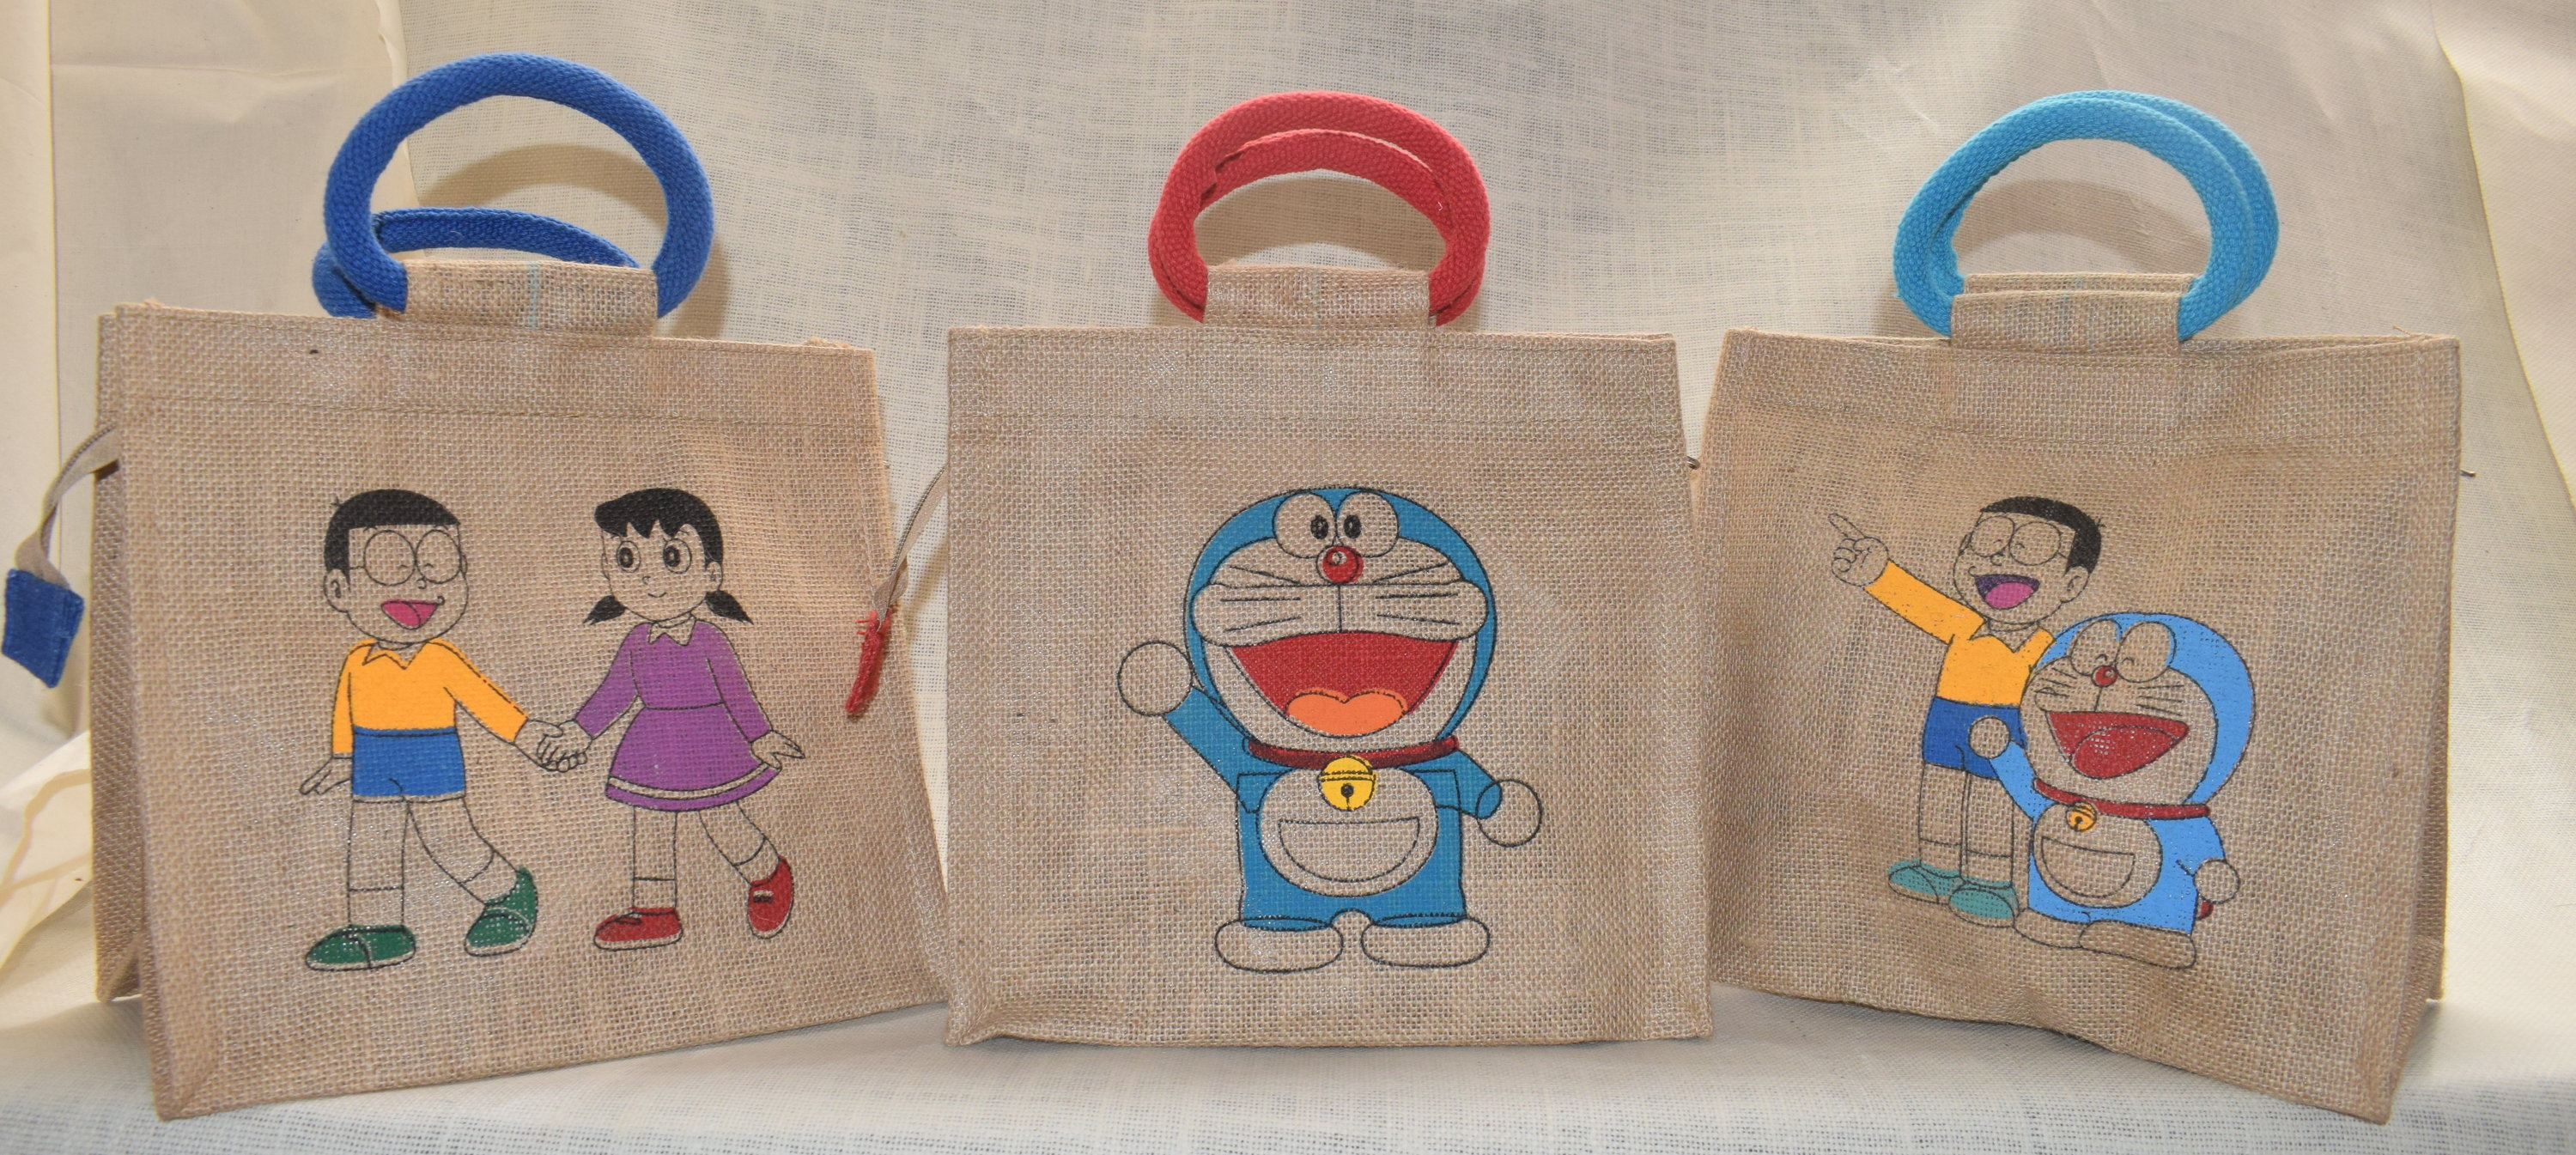 Kids-Lunch-bags-banner